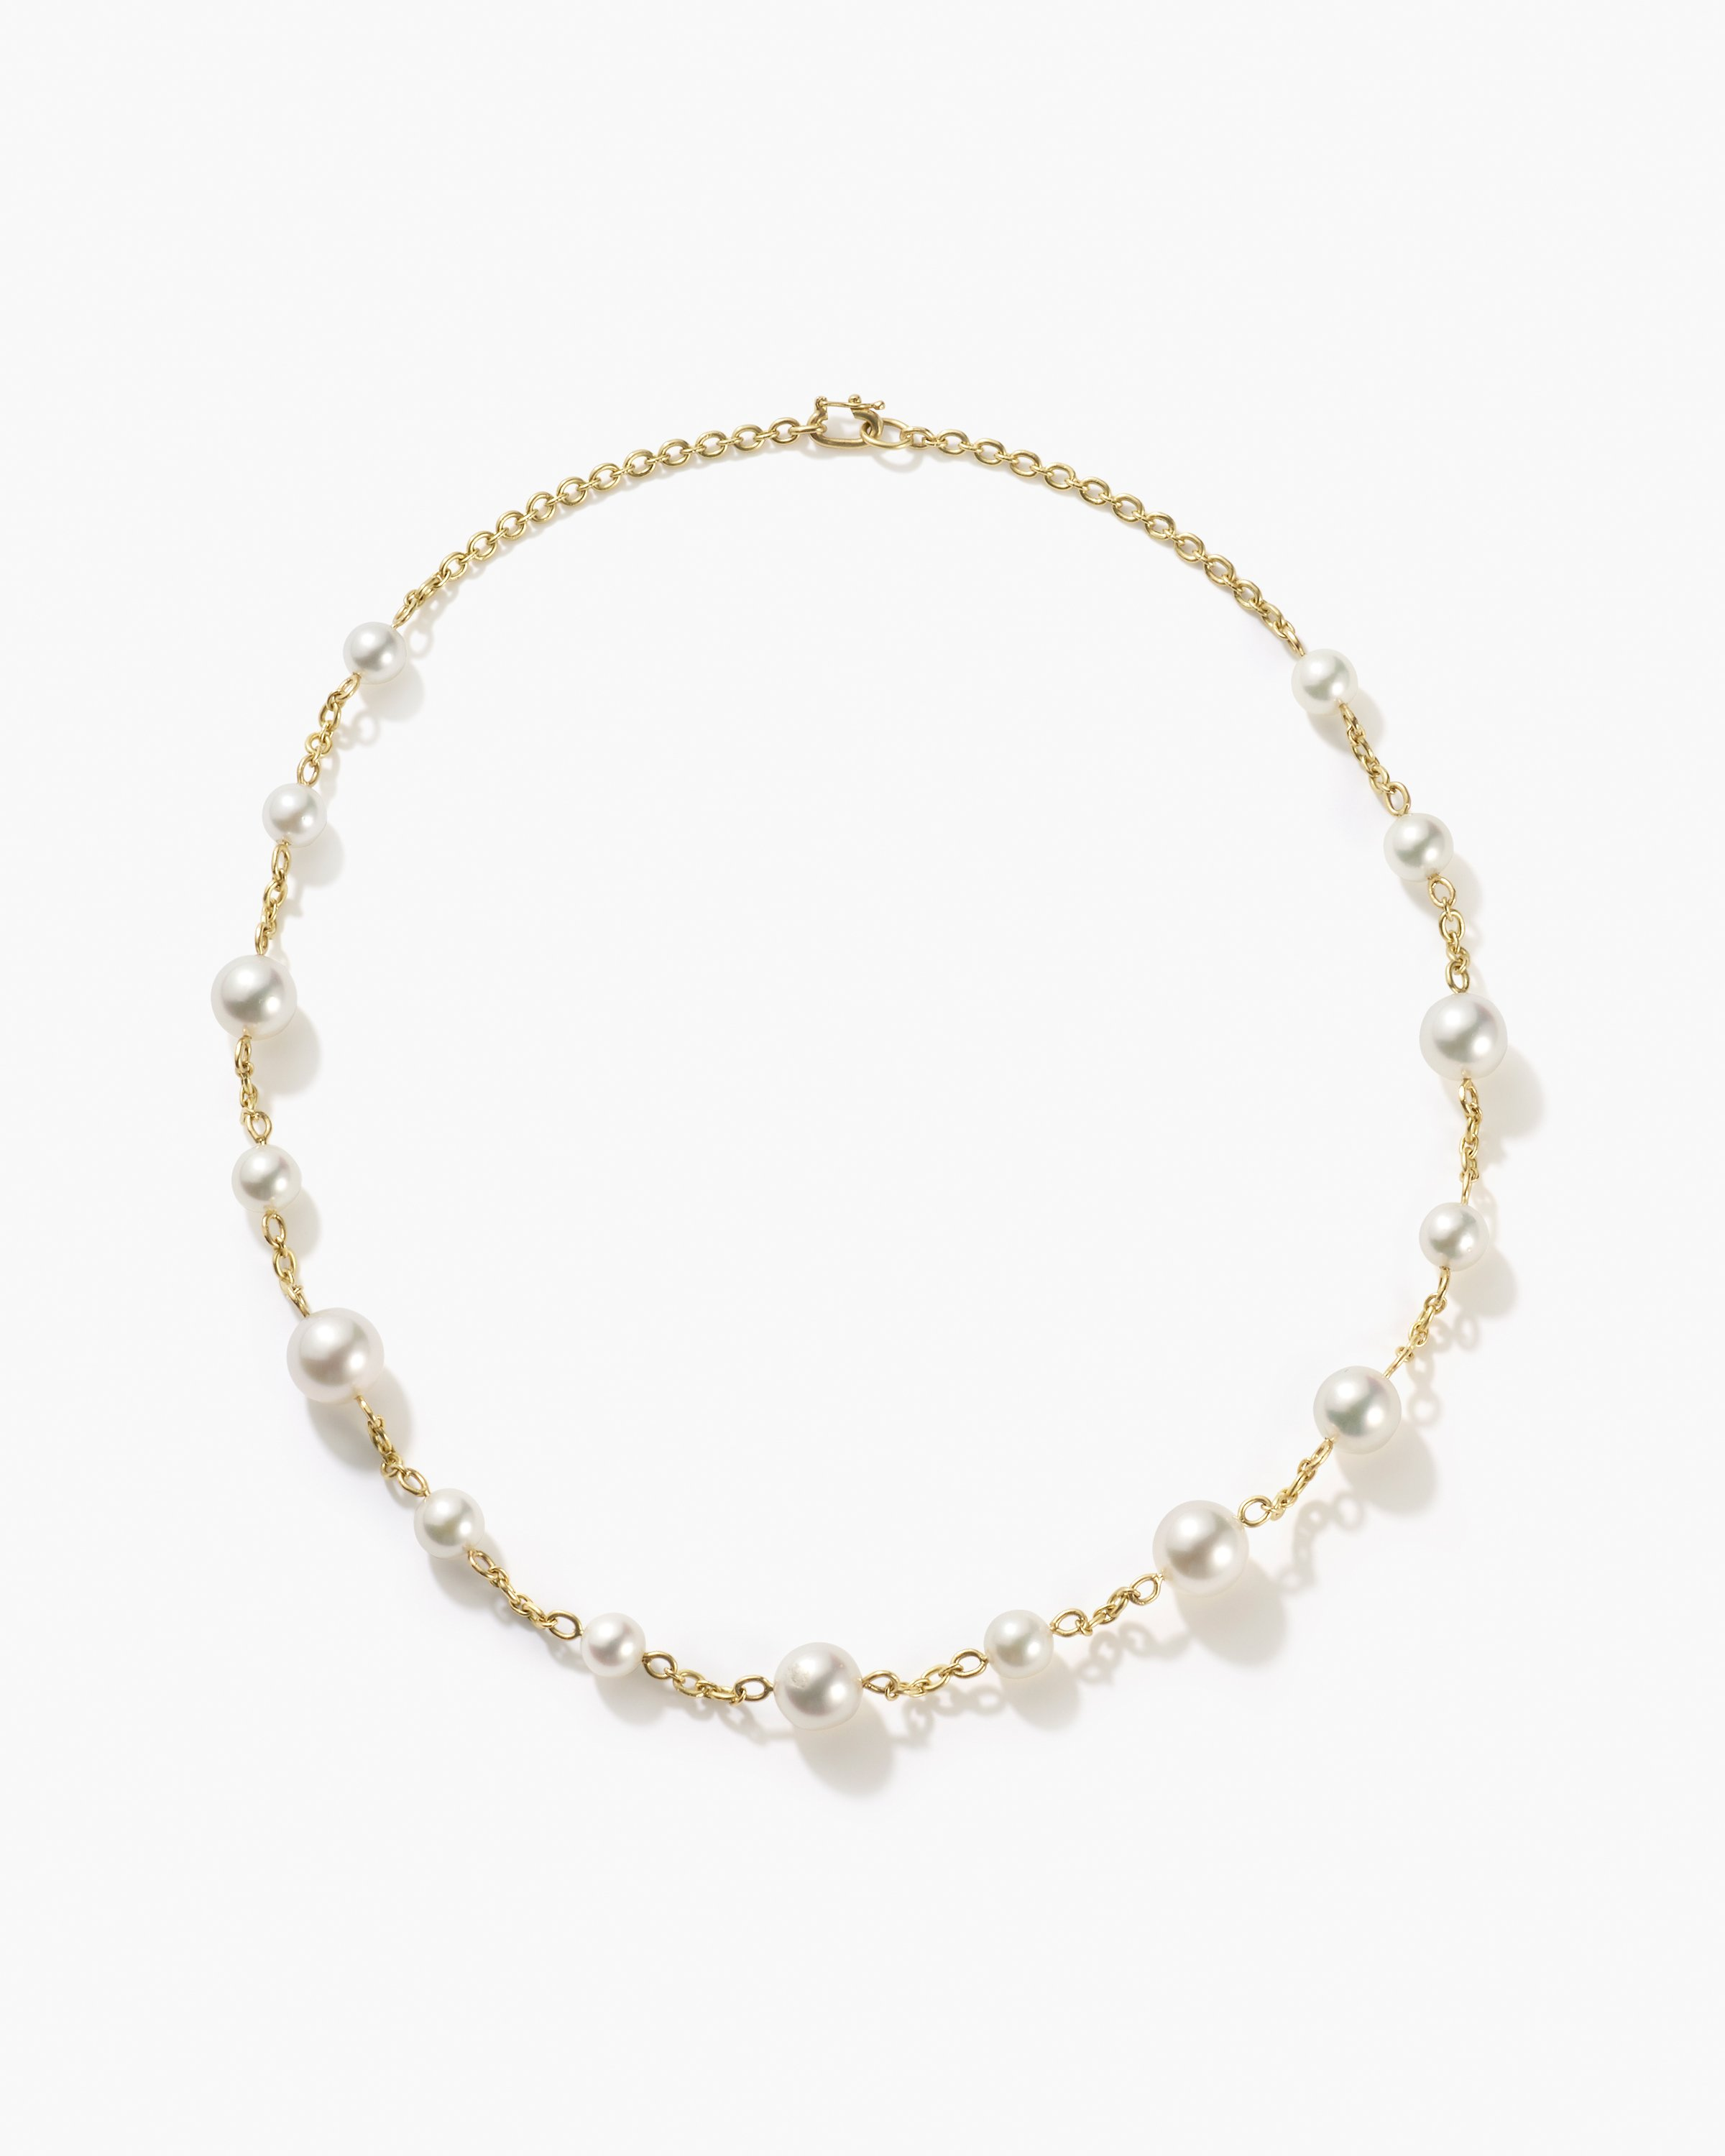 Irene Neuwirth Gumball Link Pearl Necklace